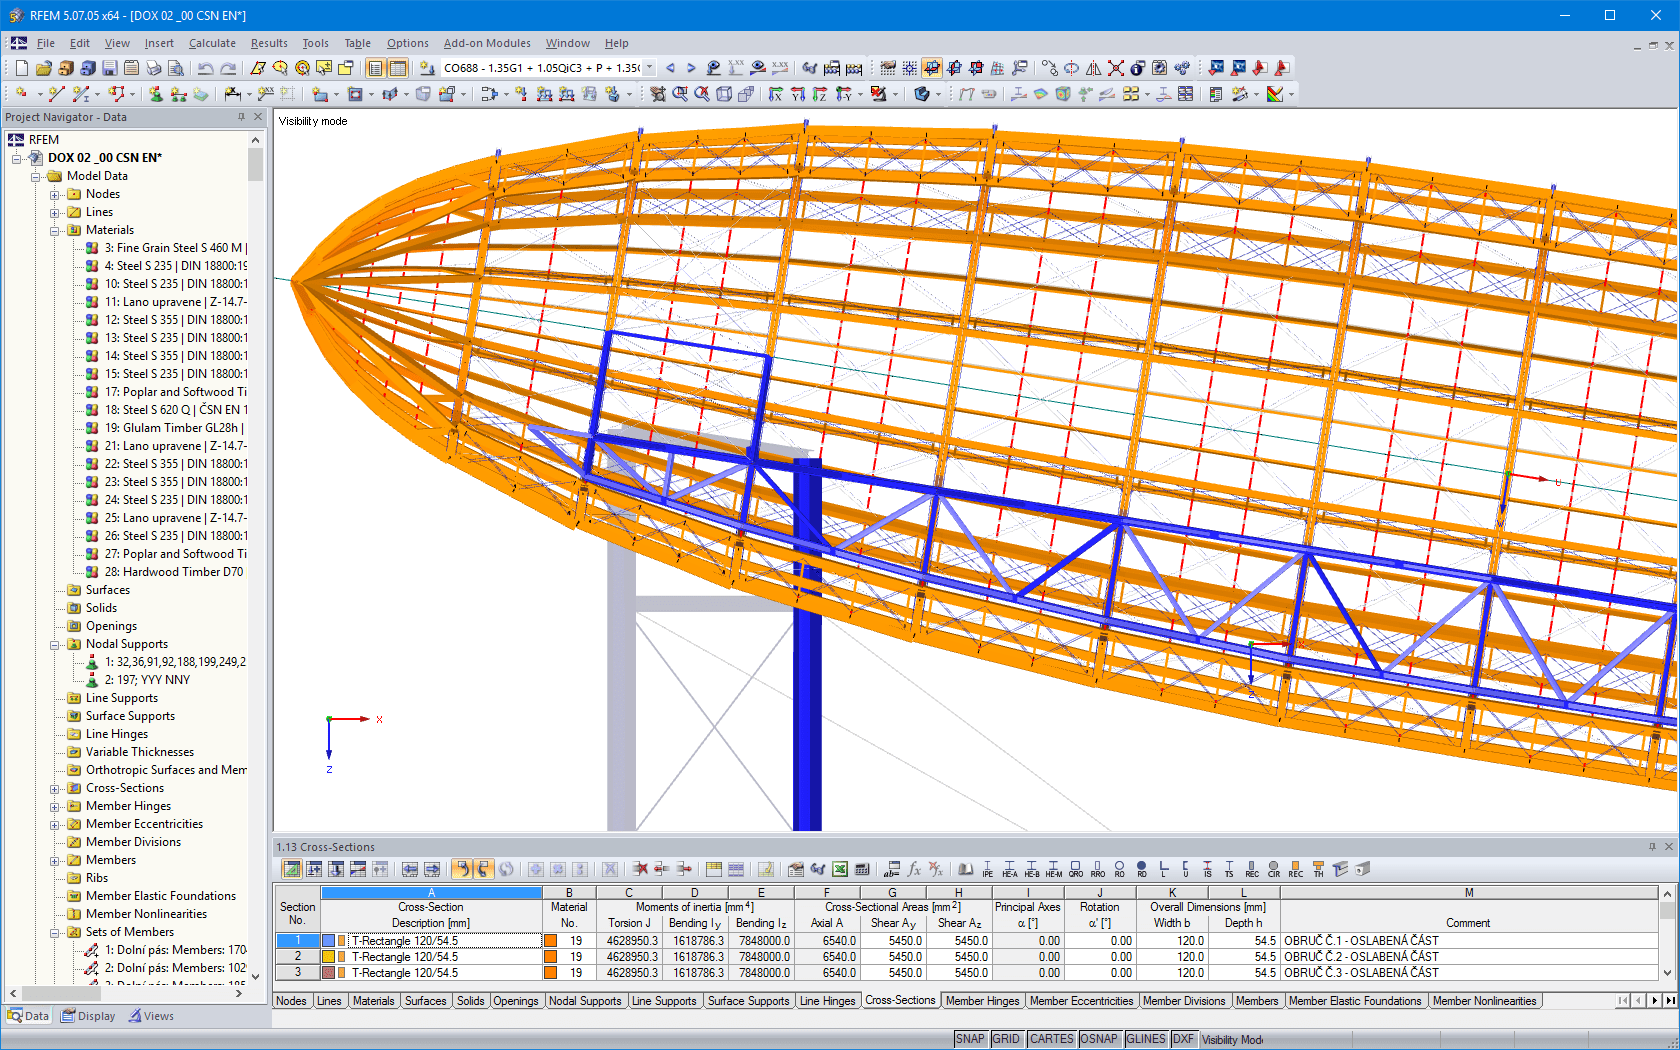 Longitudinal view of the airship structure in RFEM